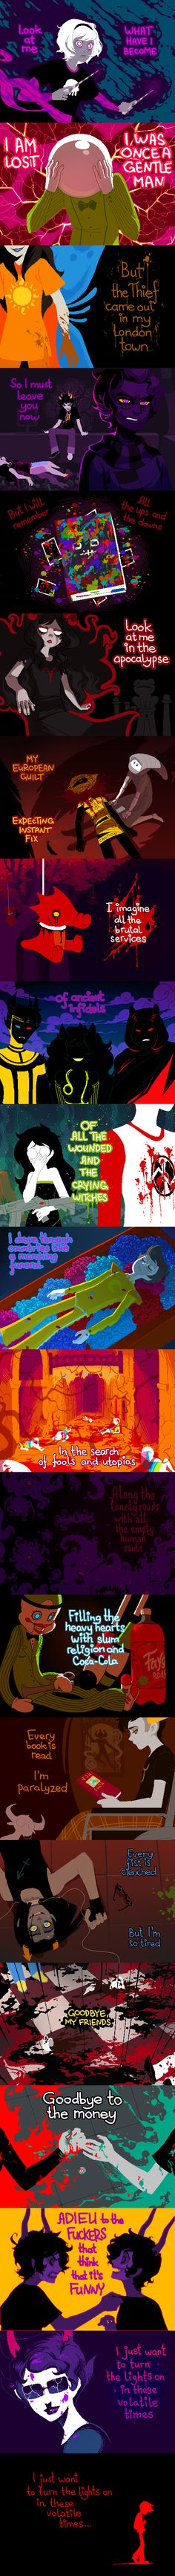 More Homestuck fanart. Volatile Times again, by the totally awesome Xamag.